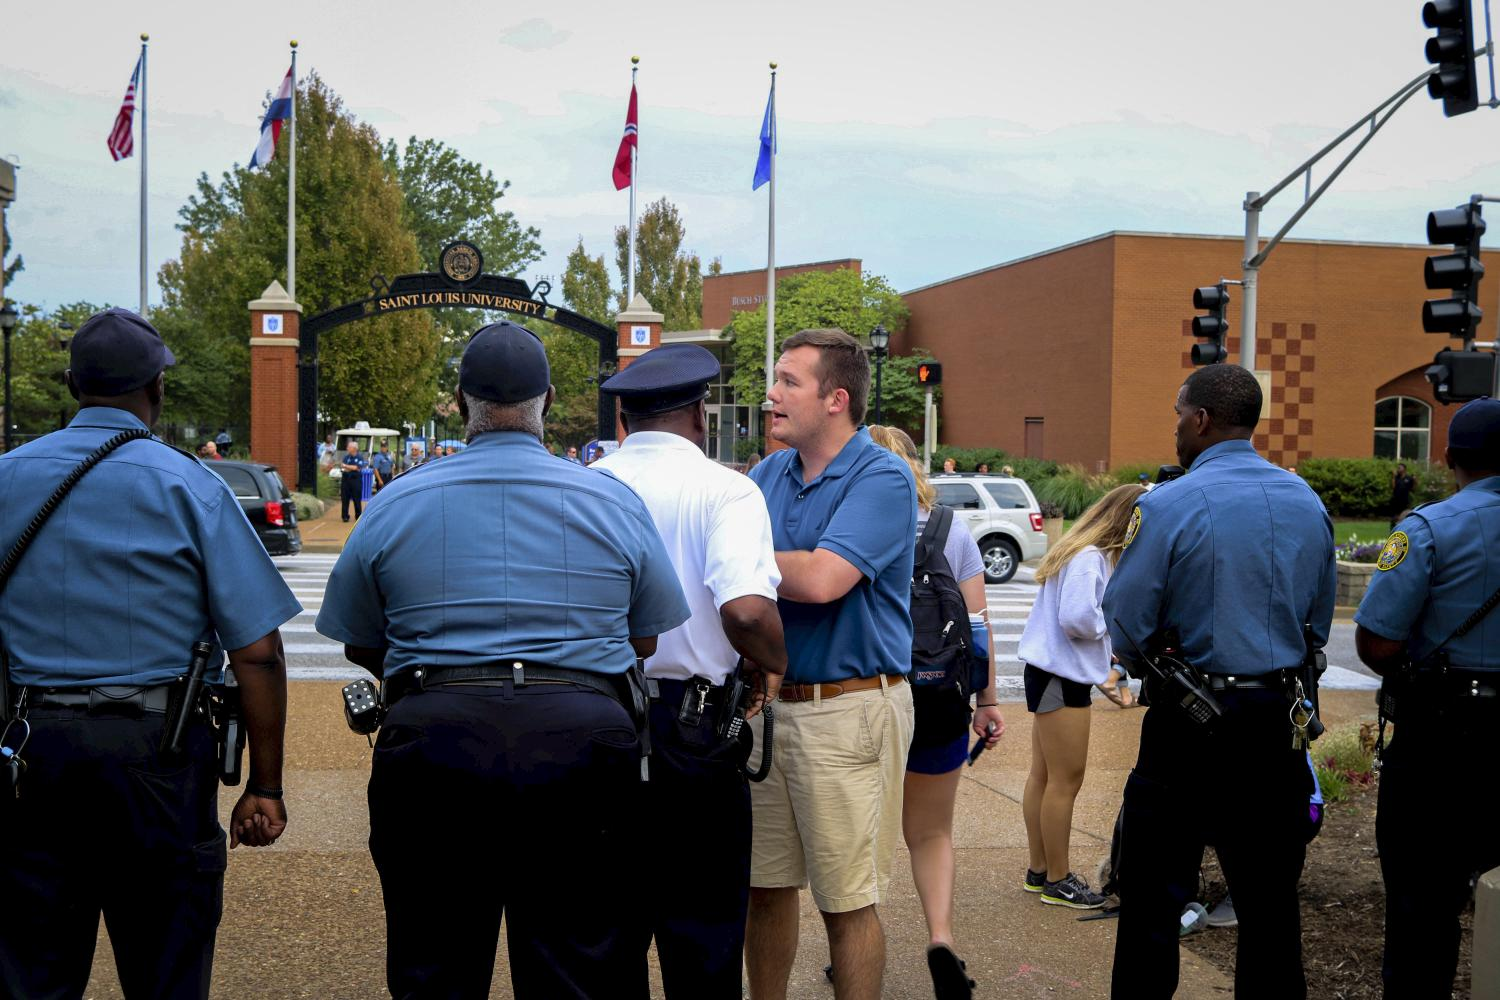 SLU student government president Dan Carter speaks with officers from the University's Department of Public Safety after a large group of protesters continued their march past campus along Grand Blvd.